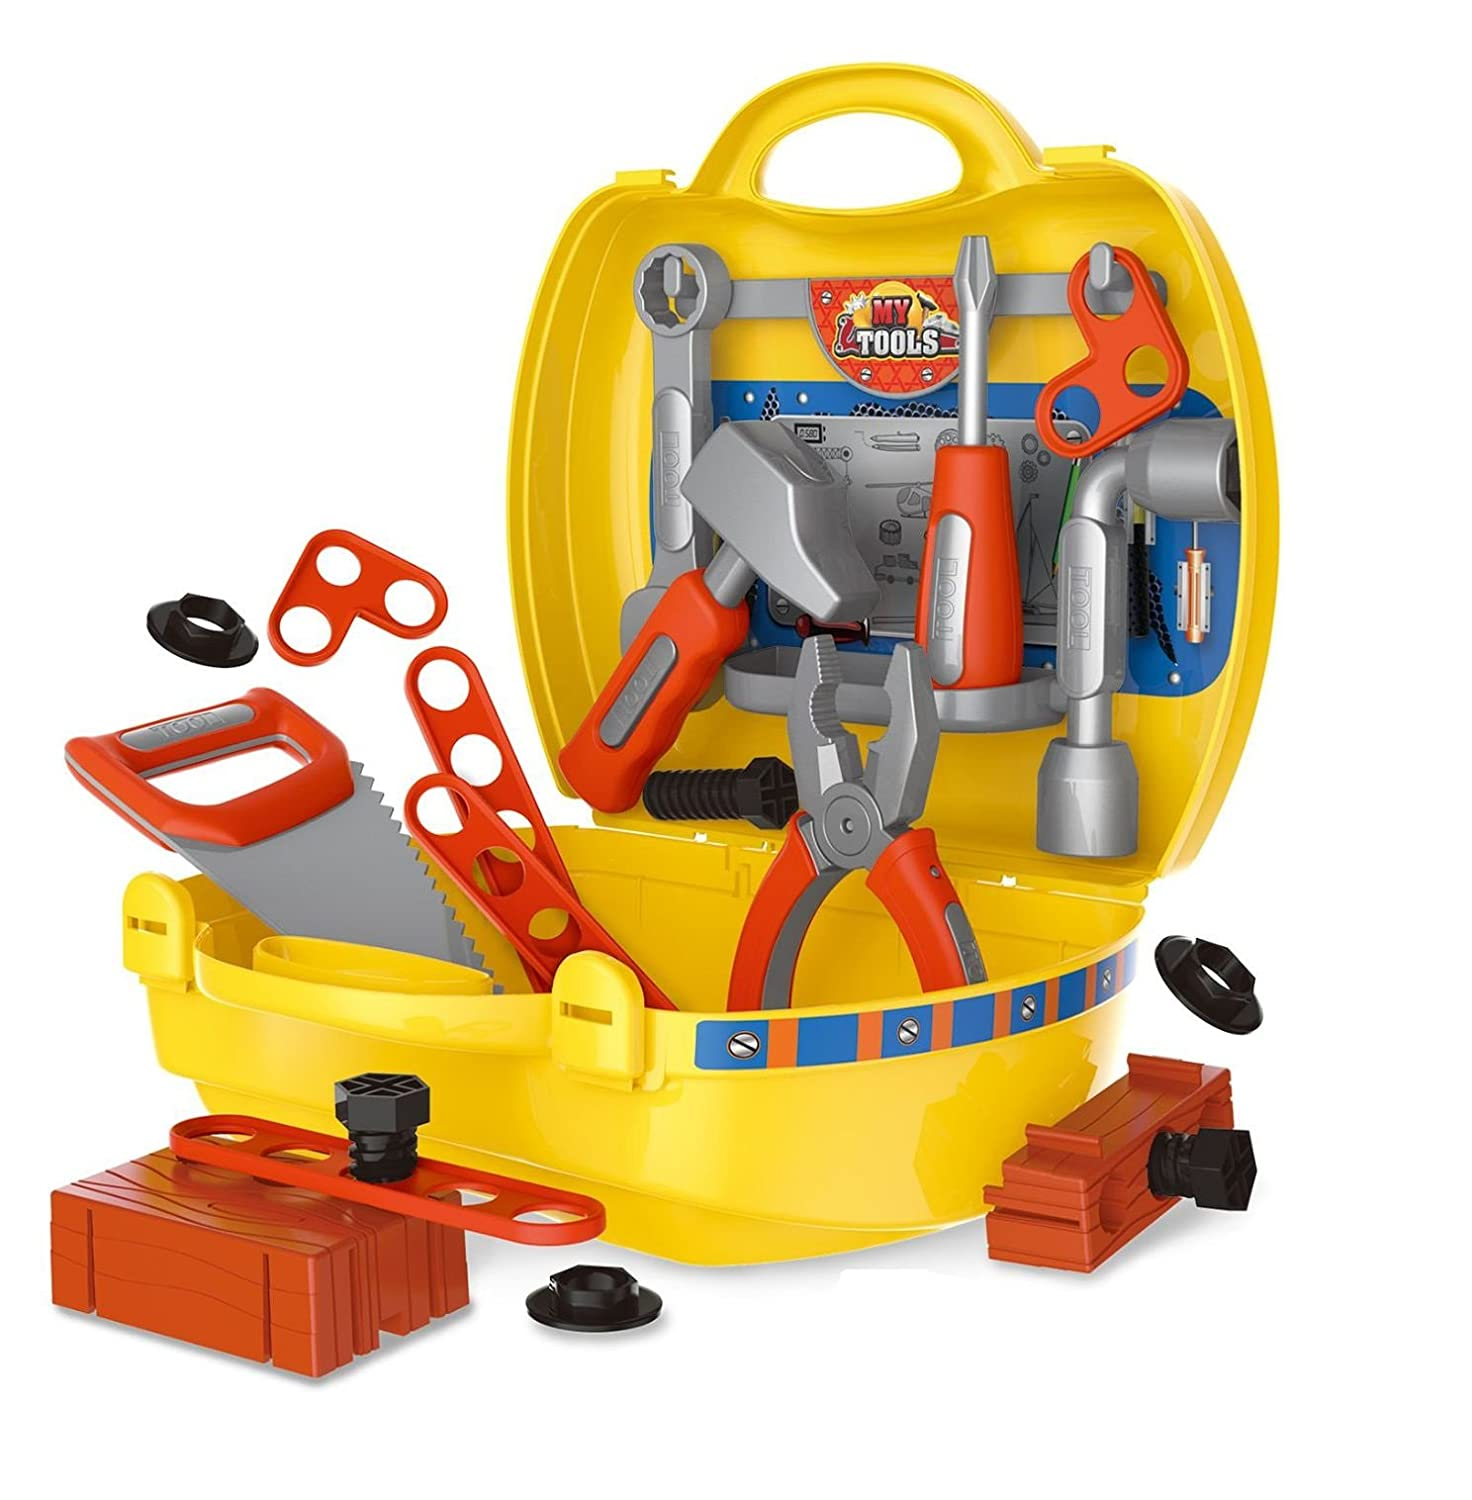 Toyshine DIY Portable Tool Set Toy With Briefcase, Accessories